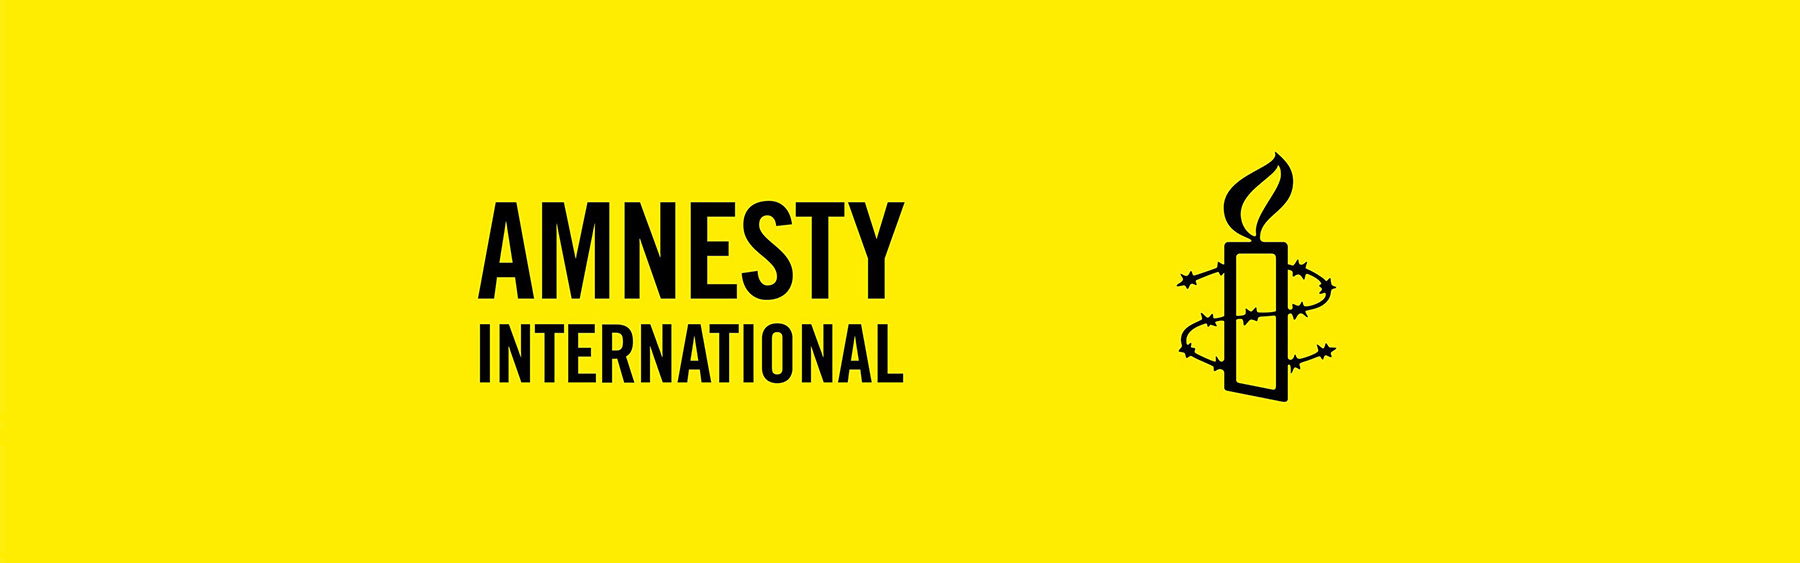 Amnesty Urgent Action Network